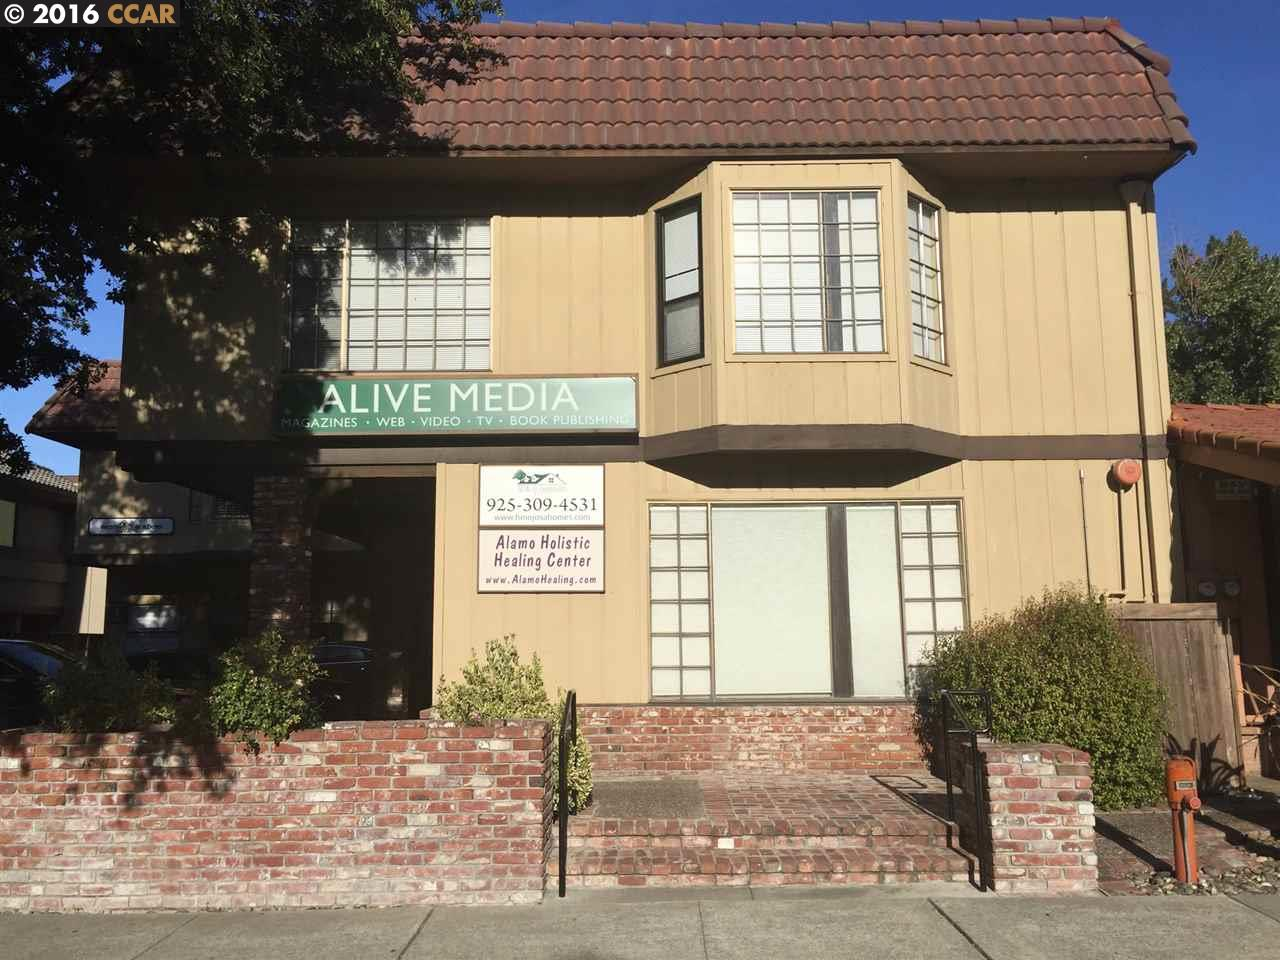 Single Family Home for Rent at 3200A Danville Blvd Unit 203 3200A Danville Blvd Unit 203 Alamo, California 94507 United States